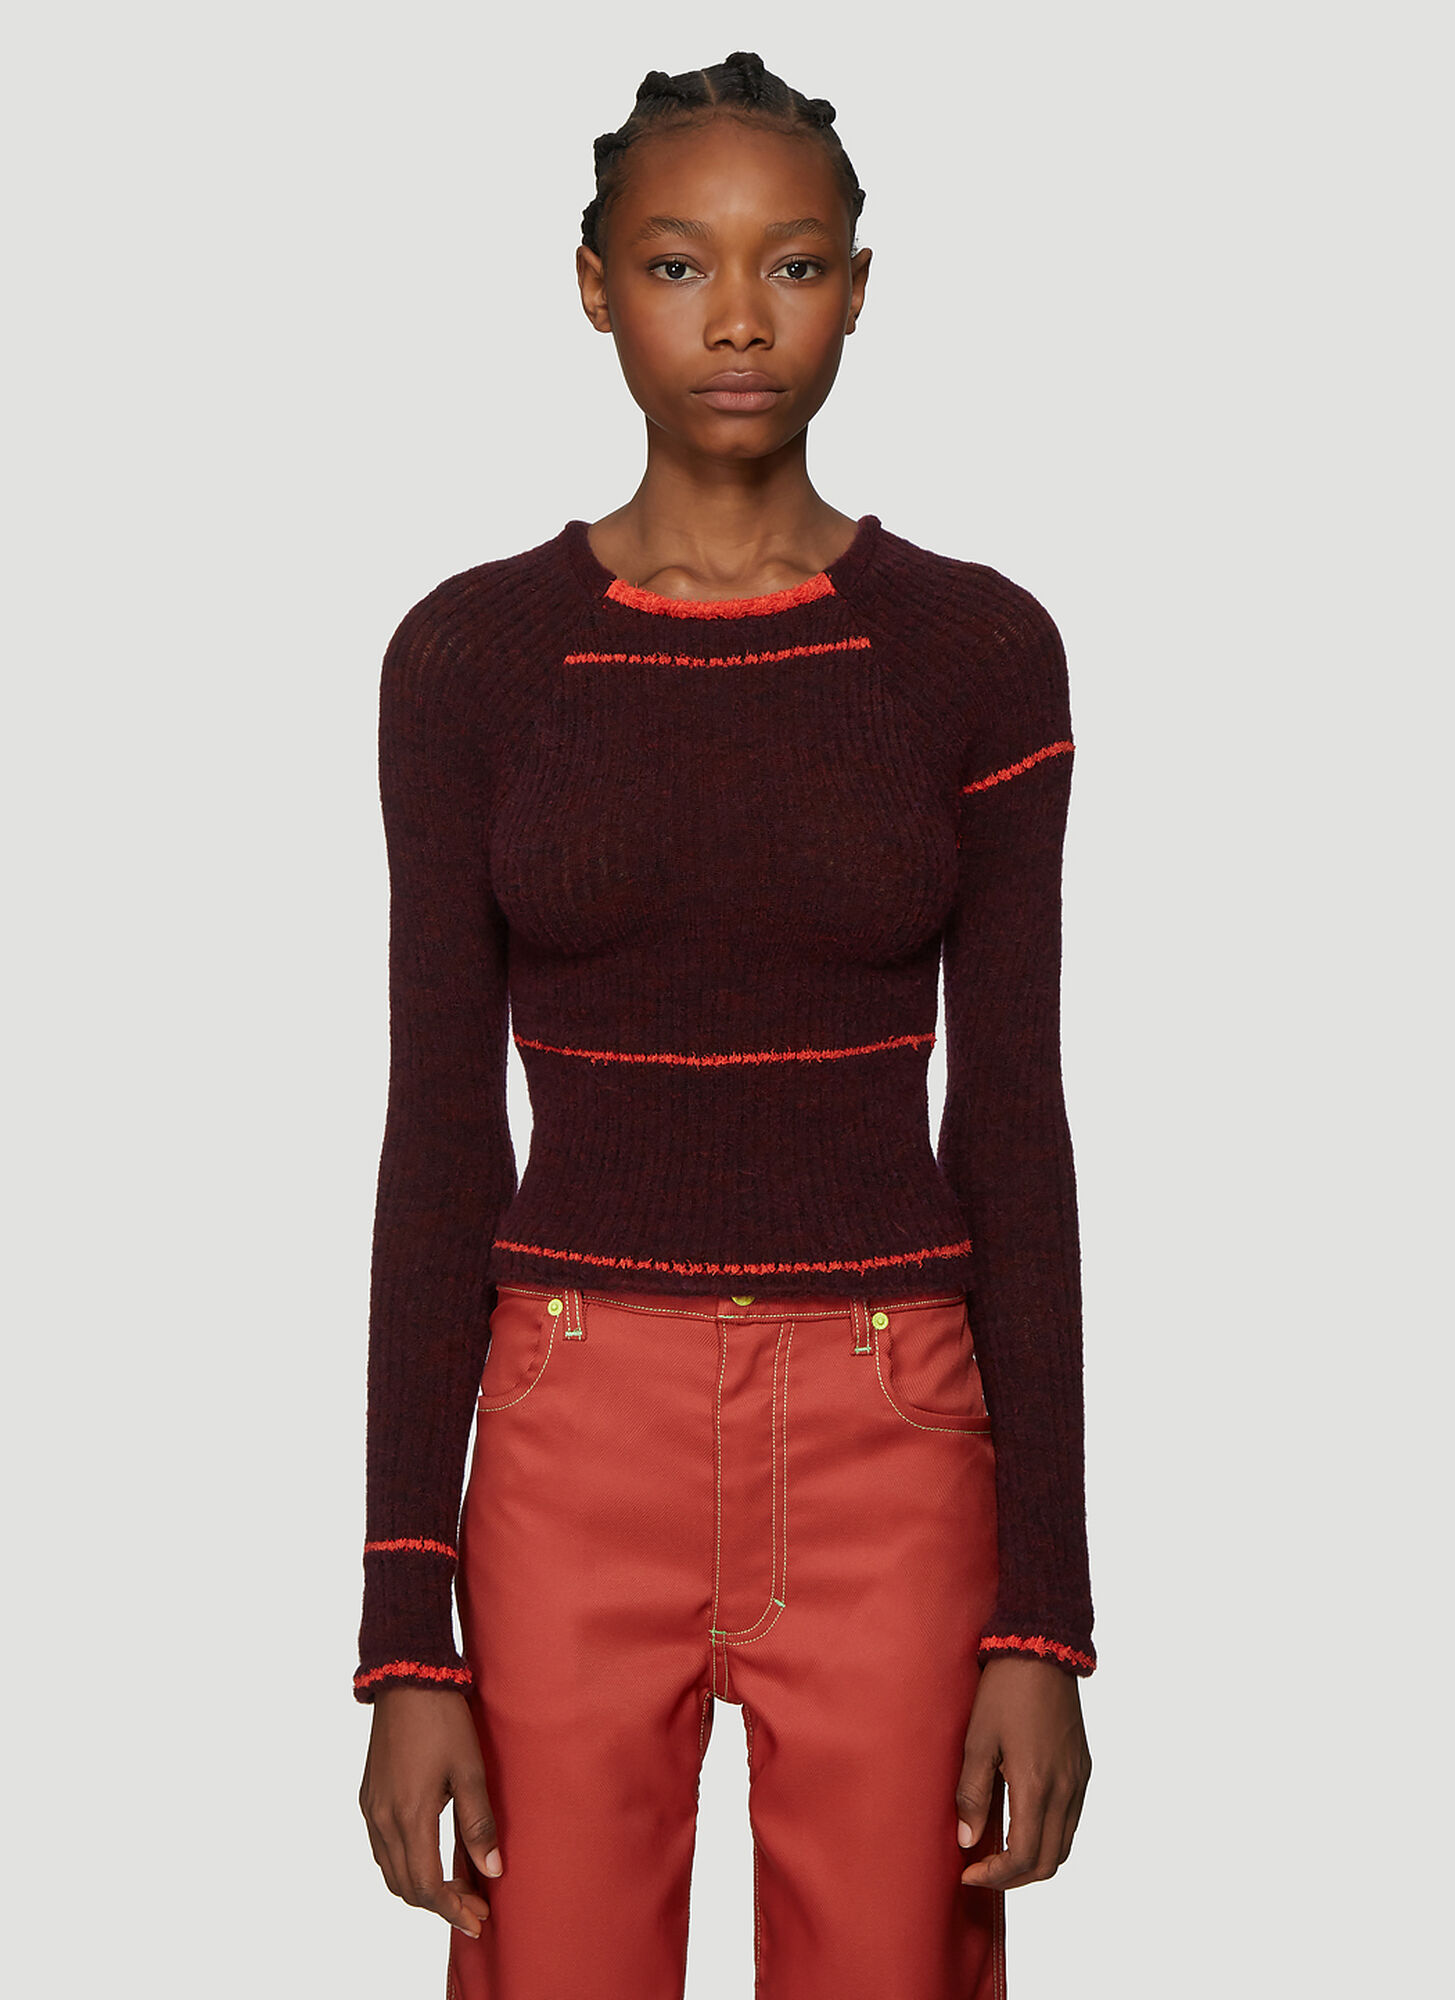 Eckhaus Latta Heat Wave Knit Sweater in Burgundy